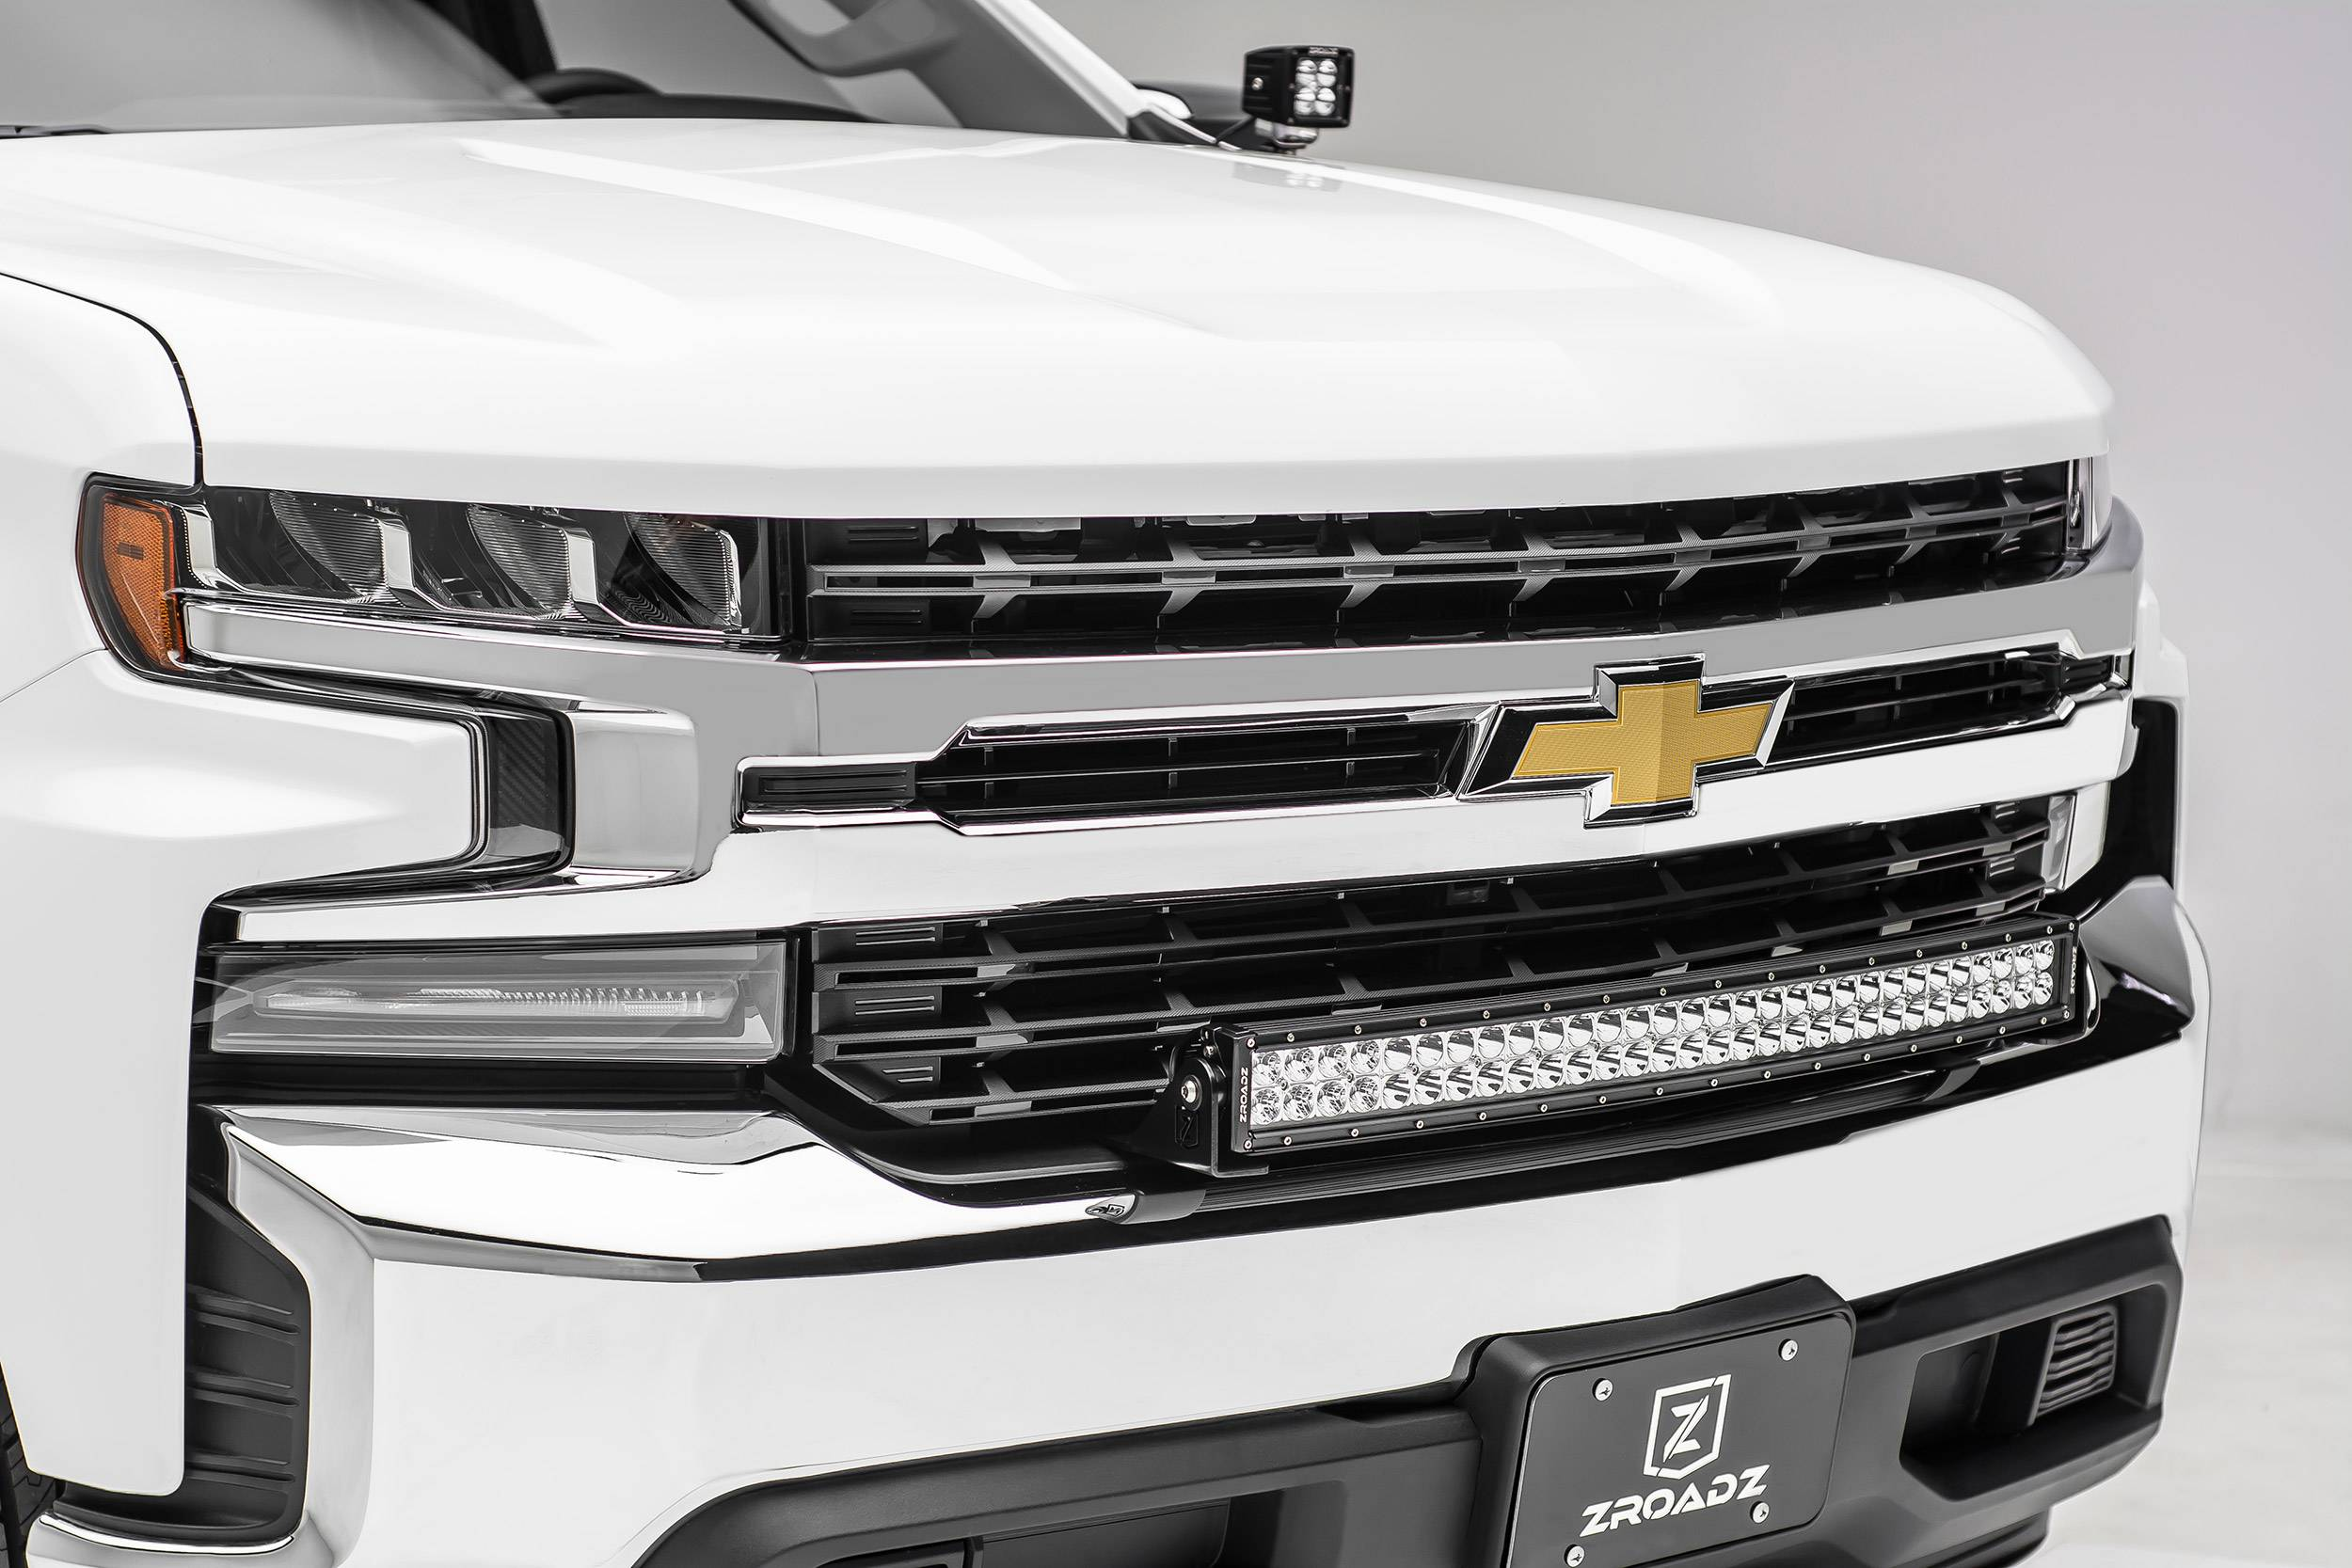 ZROADZ                                             - 2019-2021 Chevrolet Silverado 1500 Front Bumper Top LED Bracket to mount 30 Inch Curved LED Light Bar - PN #Z322282